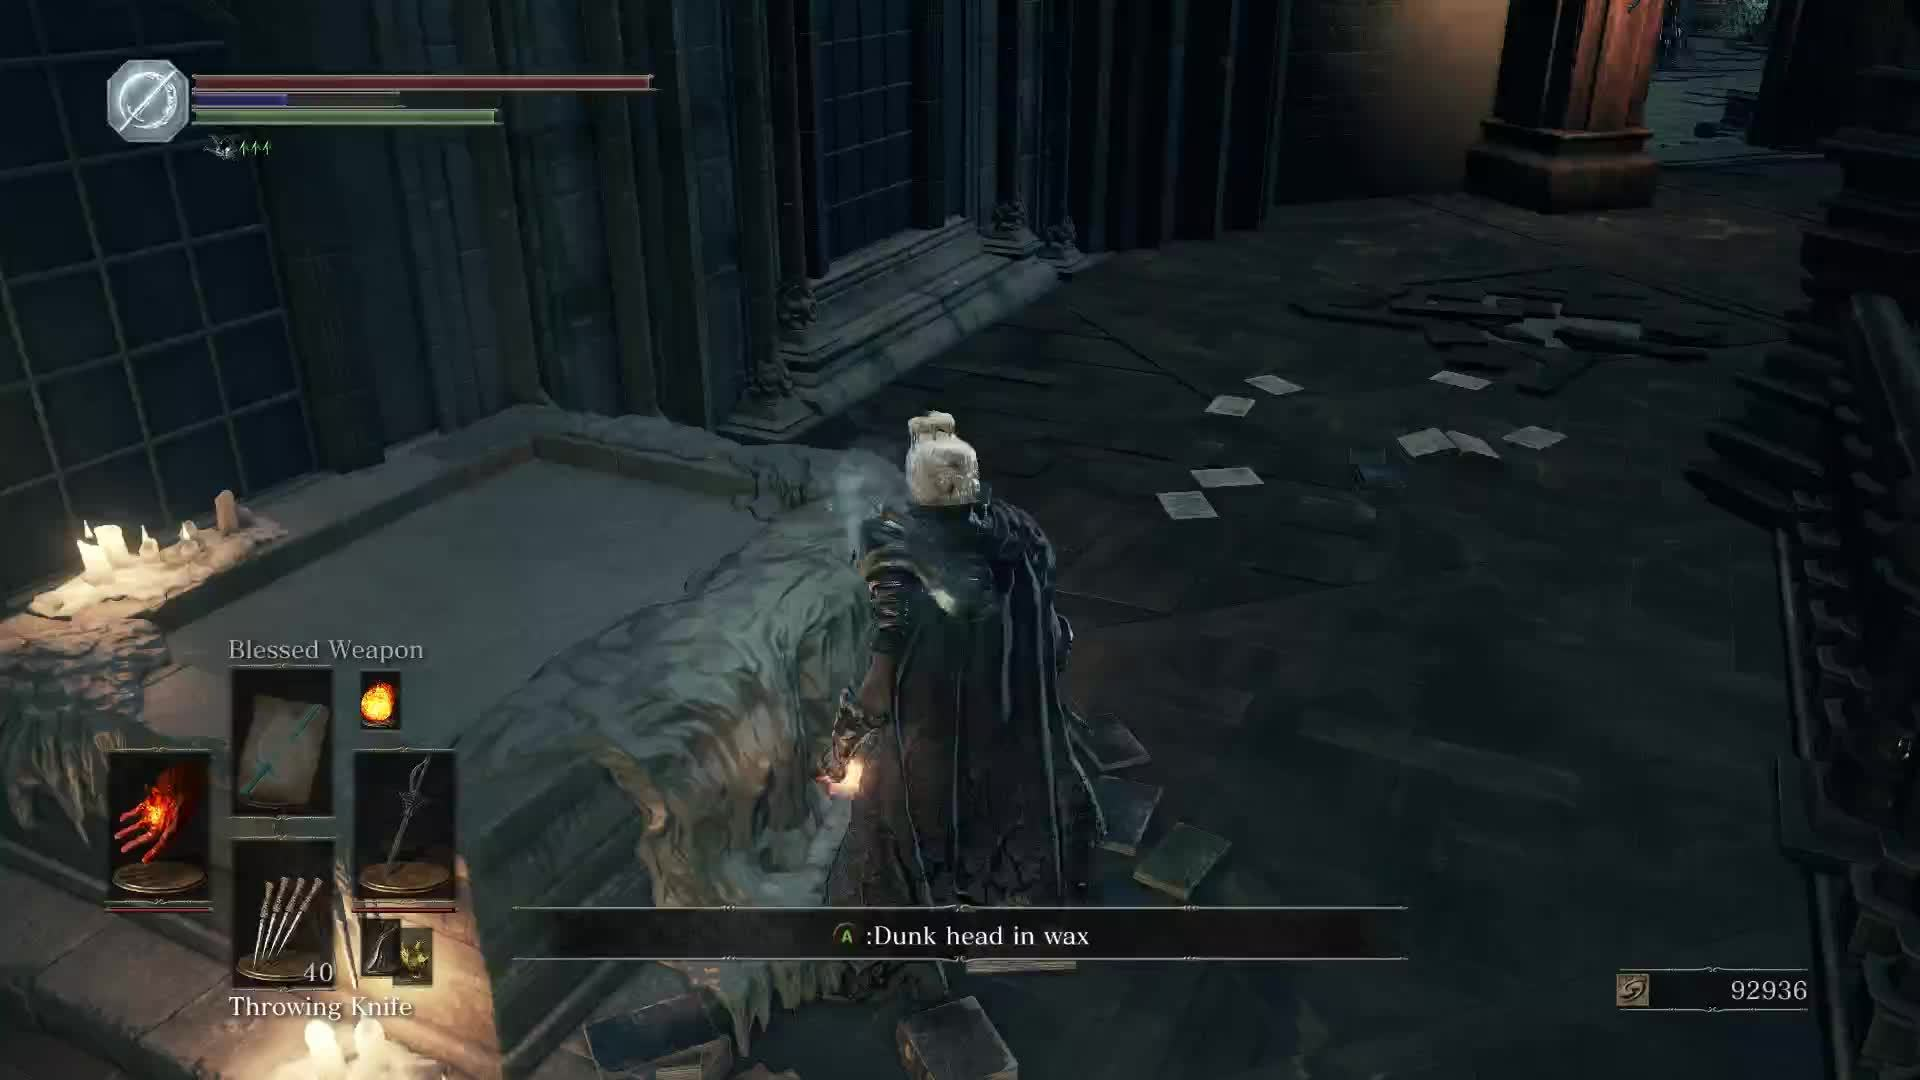 darksouls3 candle GIFs